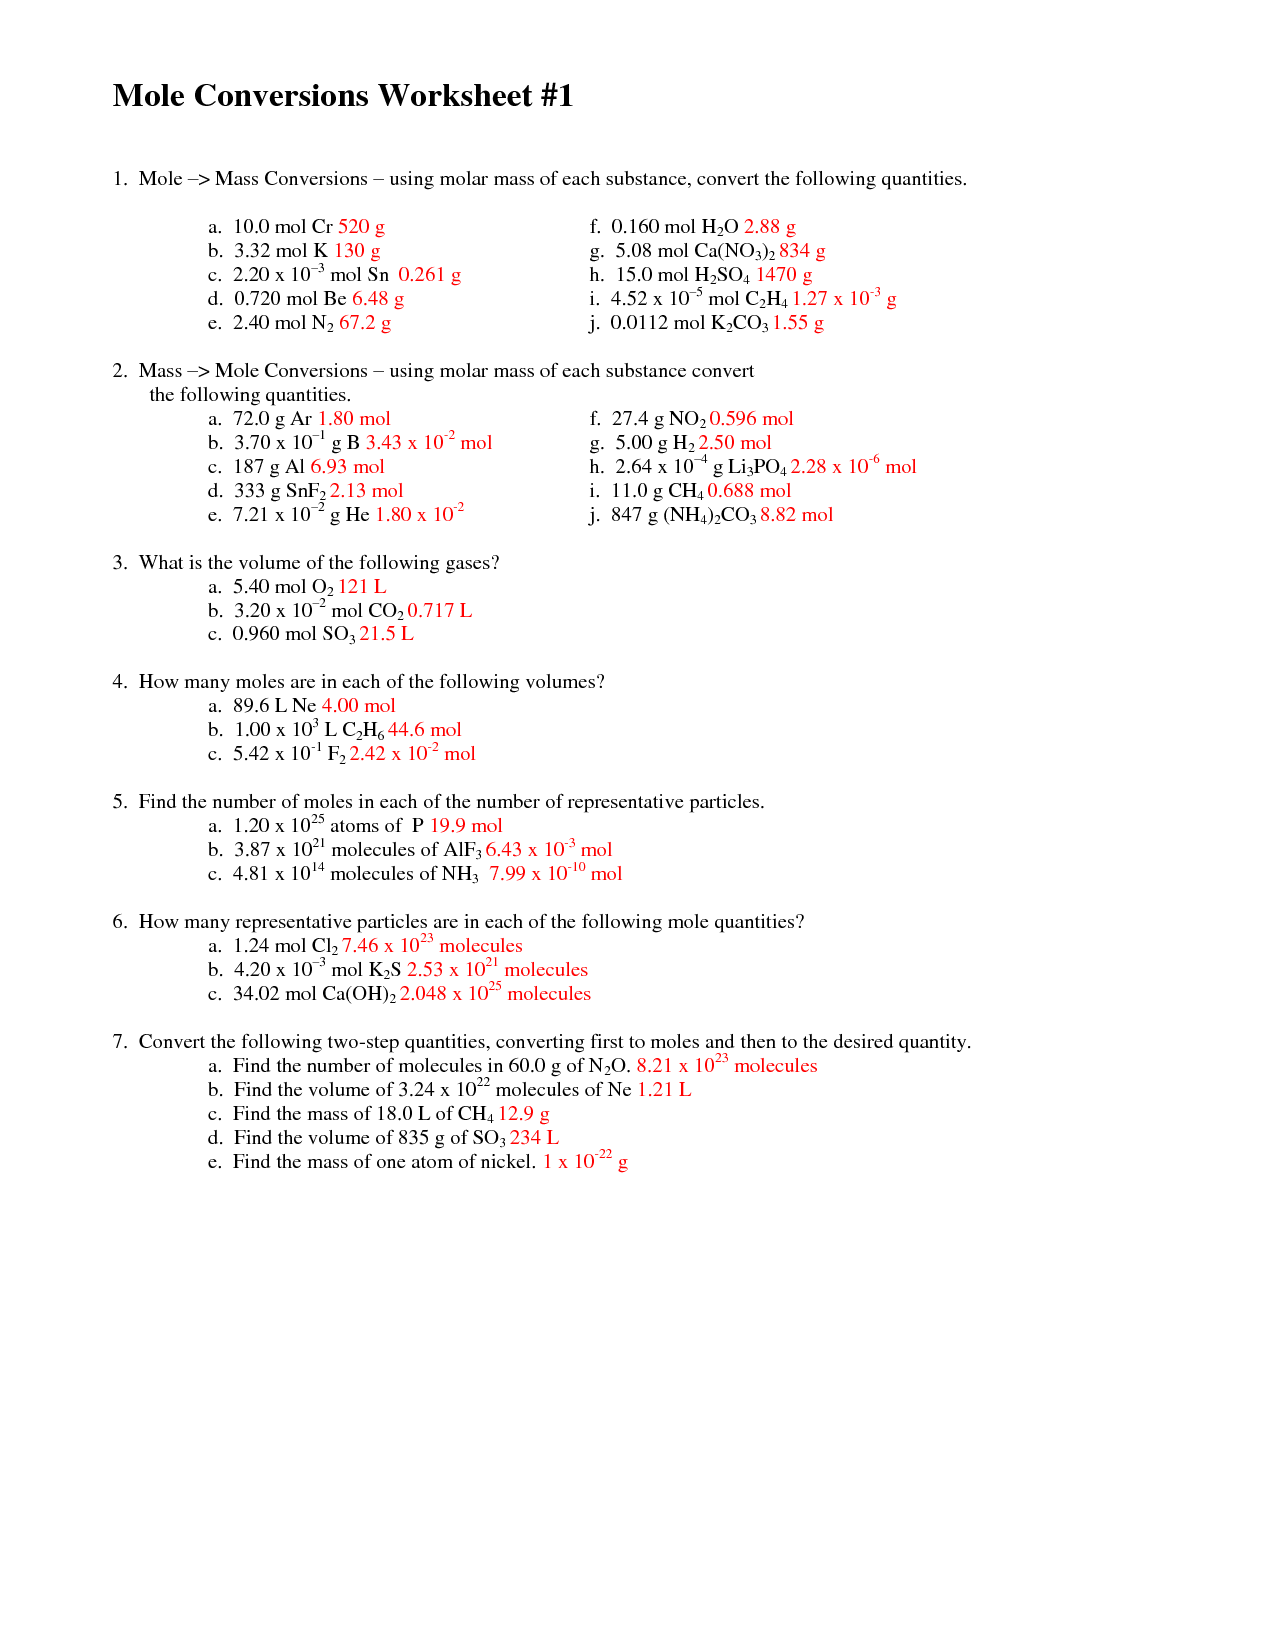 Mole Conversion Worksheet 1